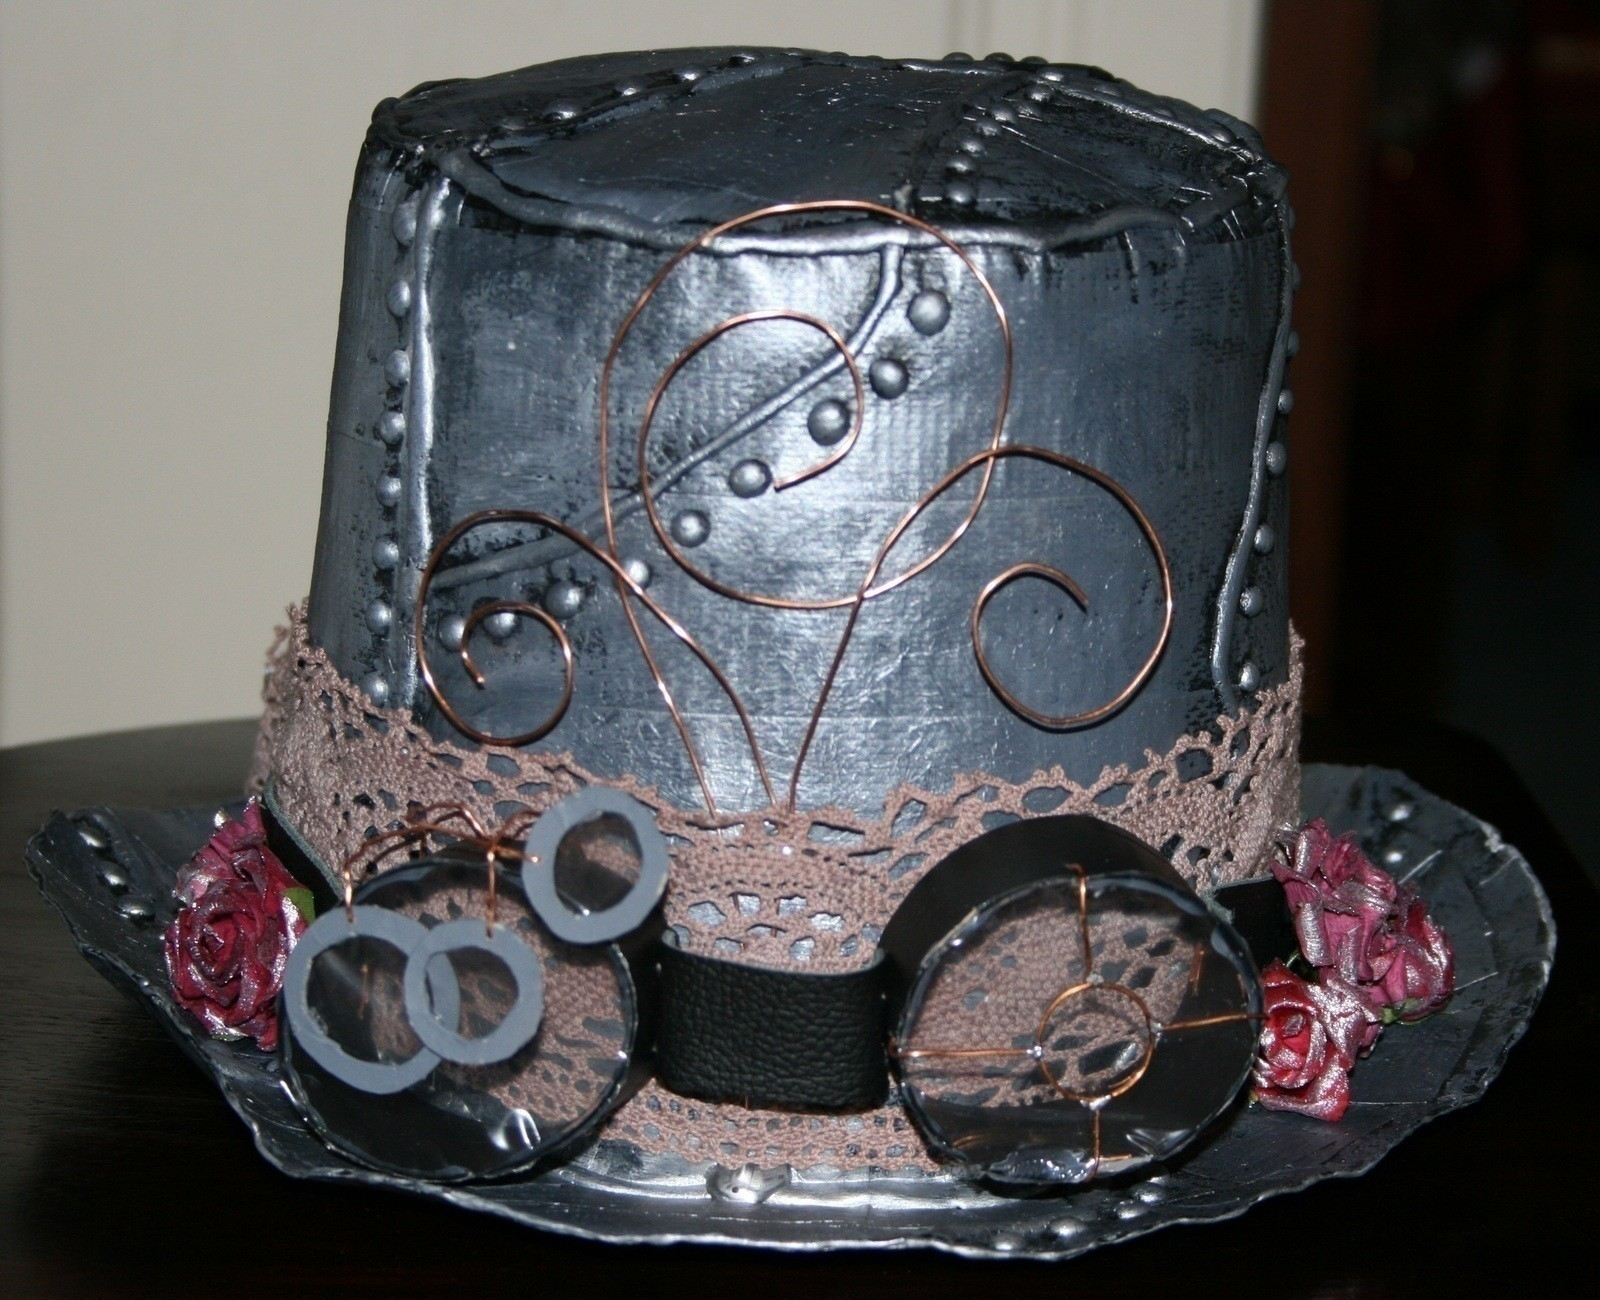 Steampunk Ideas Diy Duct Tape Steampunk Top Hat A Top Hat Spray